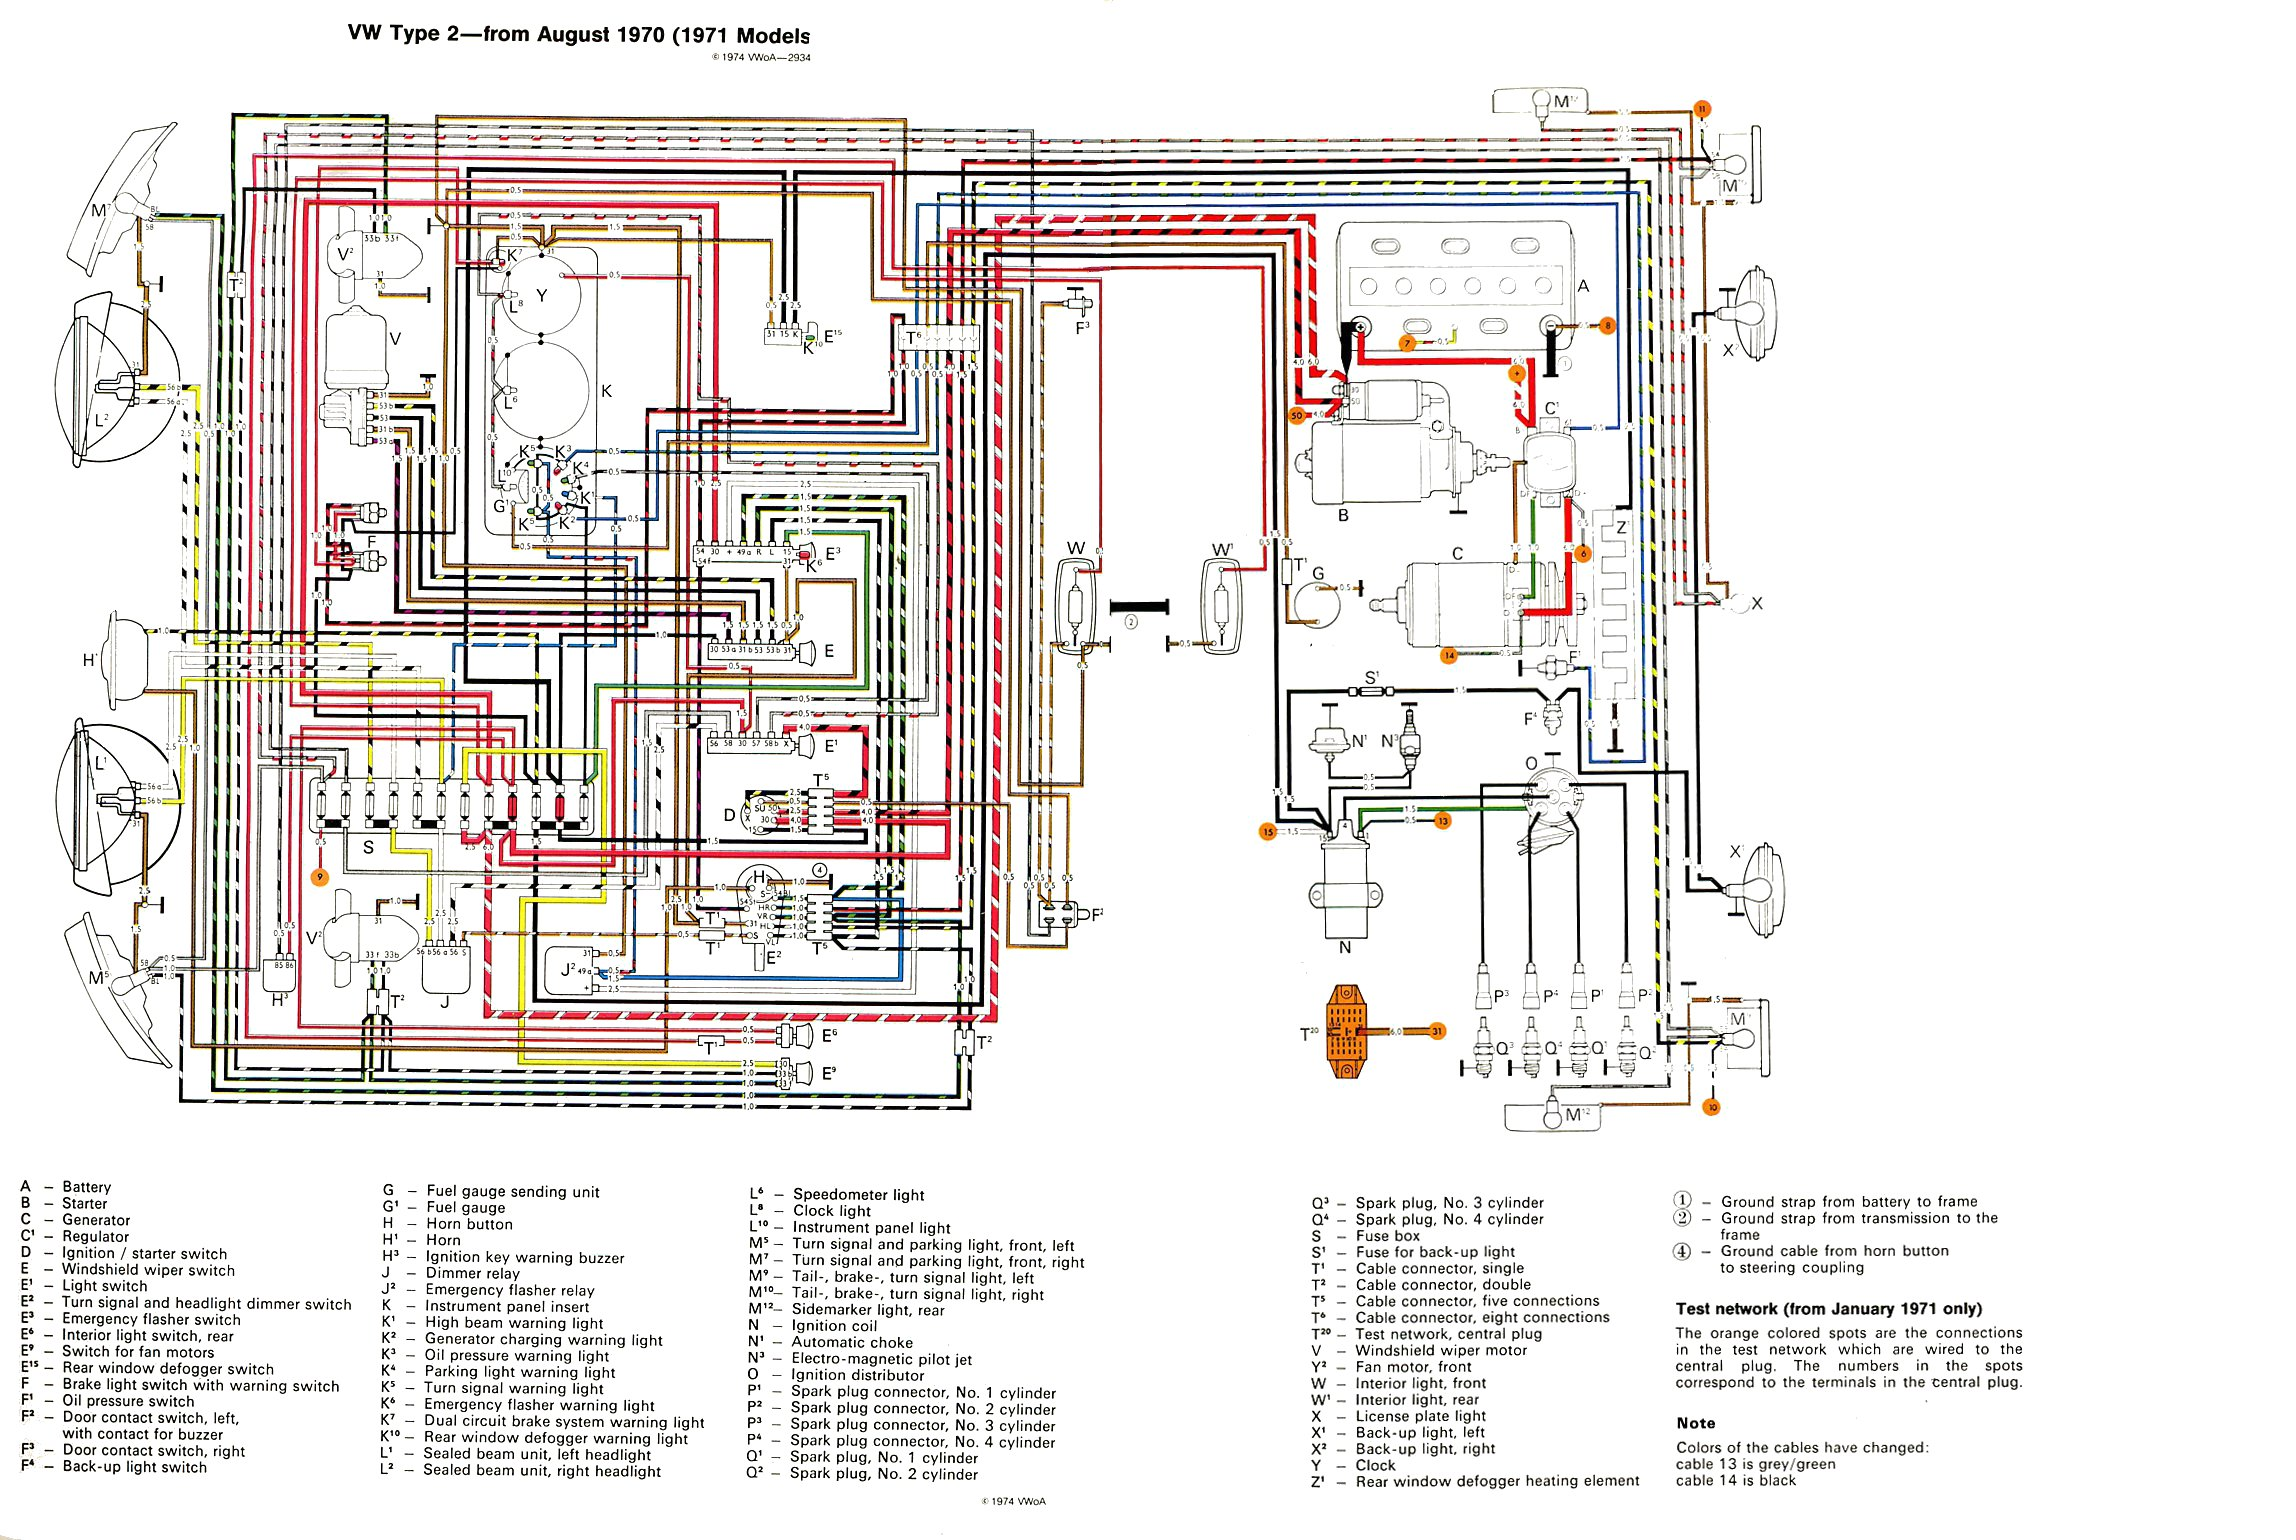 81 peterbilt wiring diagram data wiring diagram thesamba com type 2 wiring diagrams rh thesamba com 2000 379 peterbilt wiring manual 2012 peterbilt fandeluxe Image collections